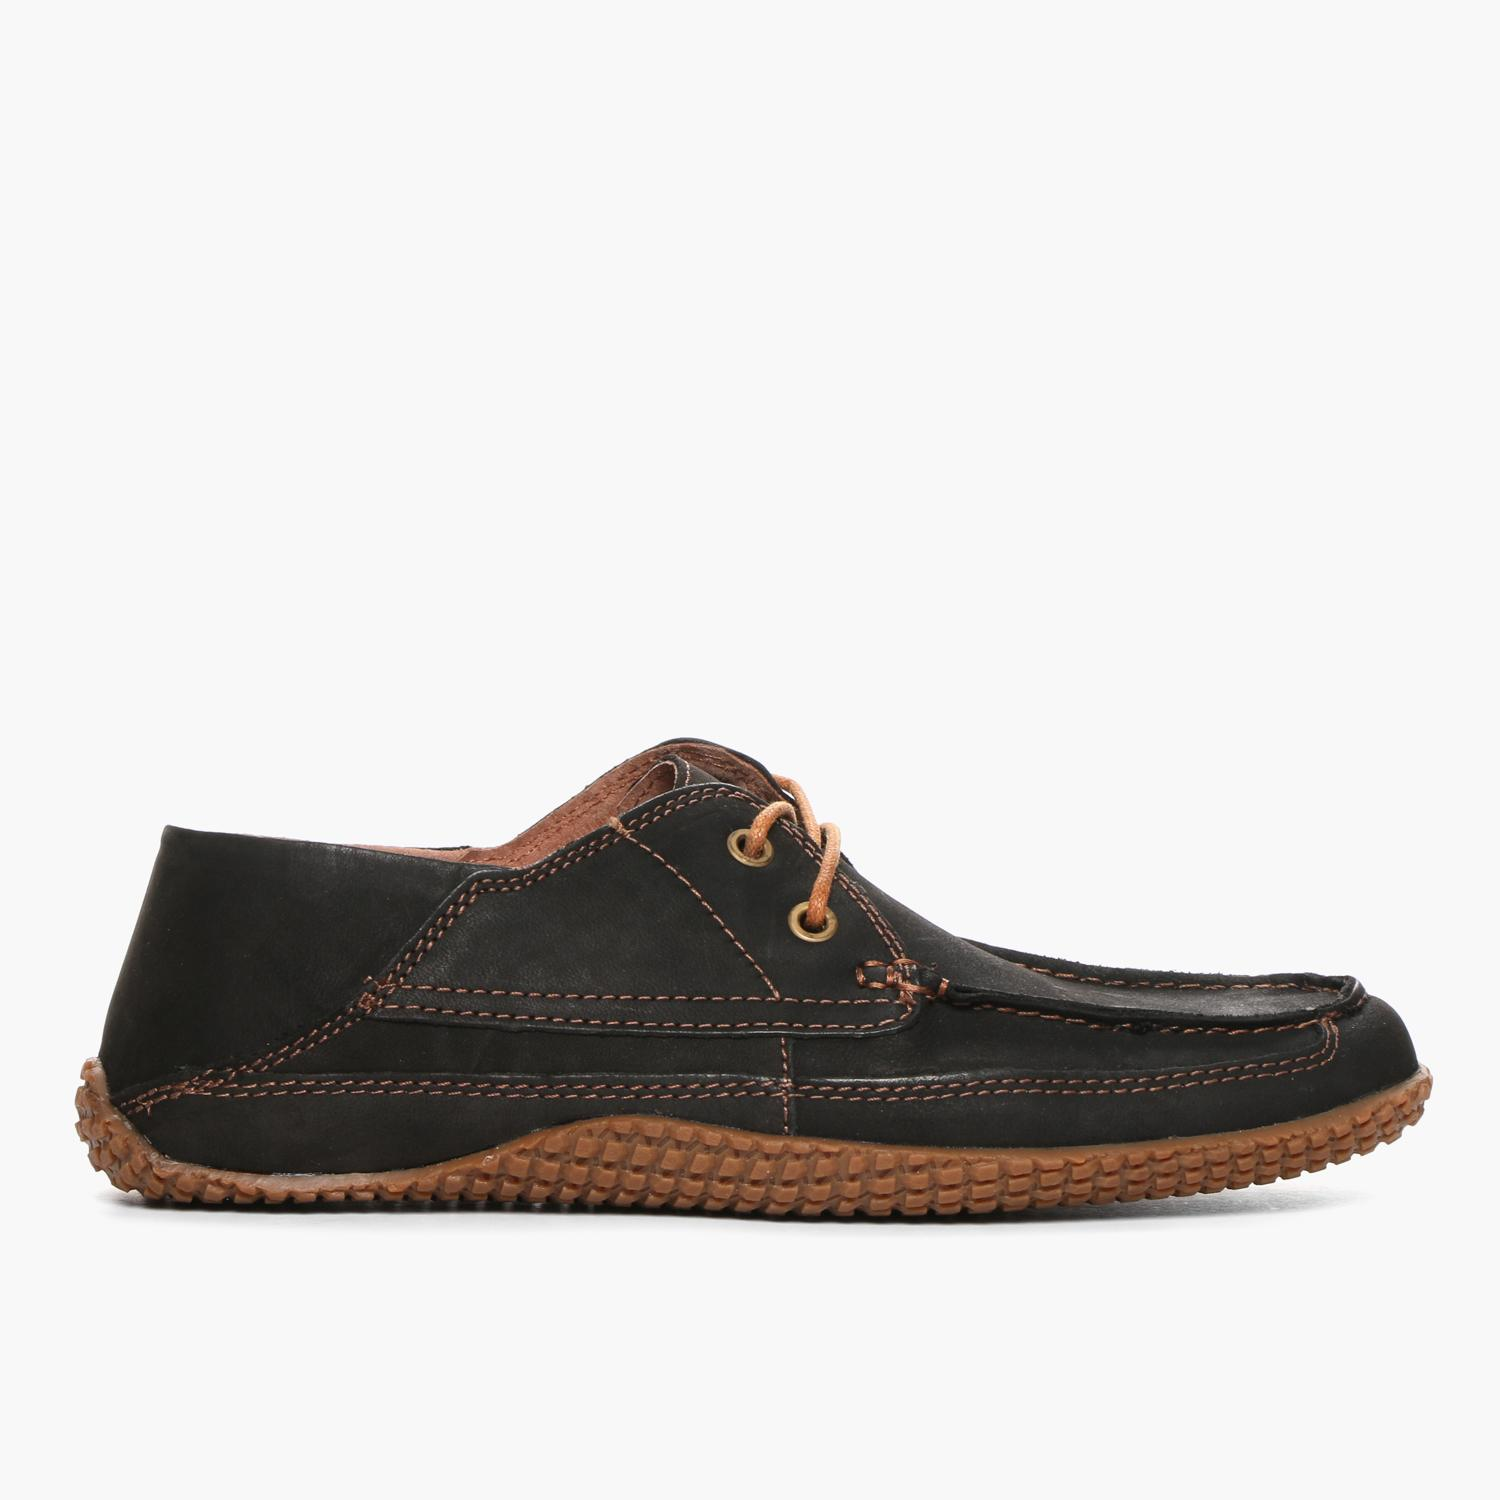 Hush Puppies Mens Curling Casual Shoes